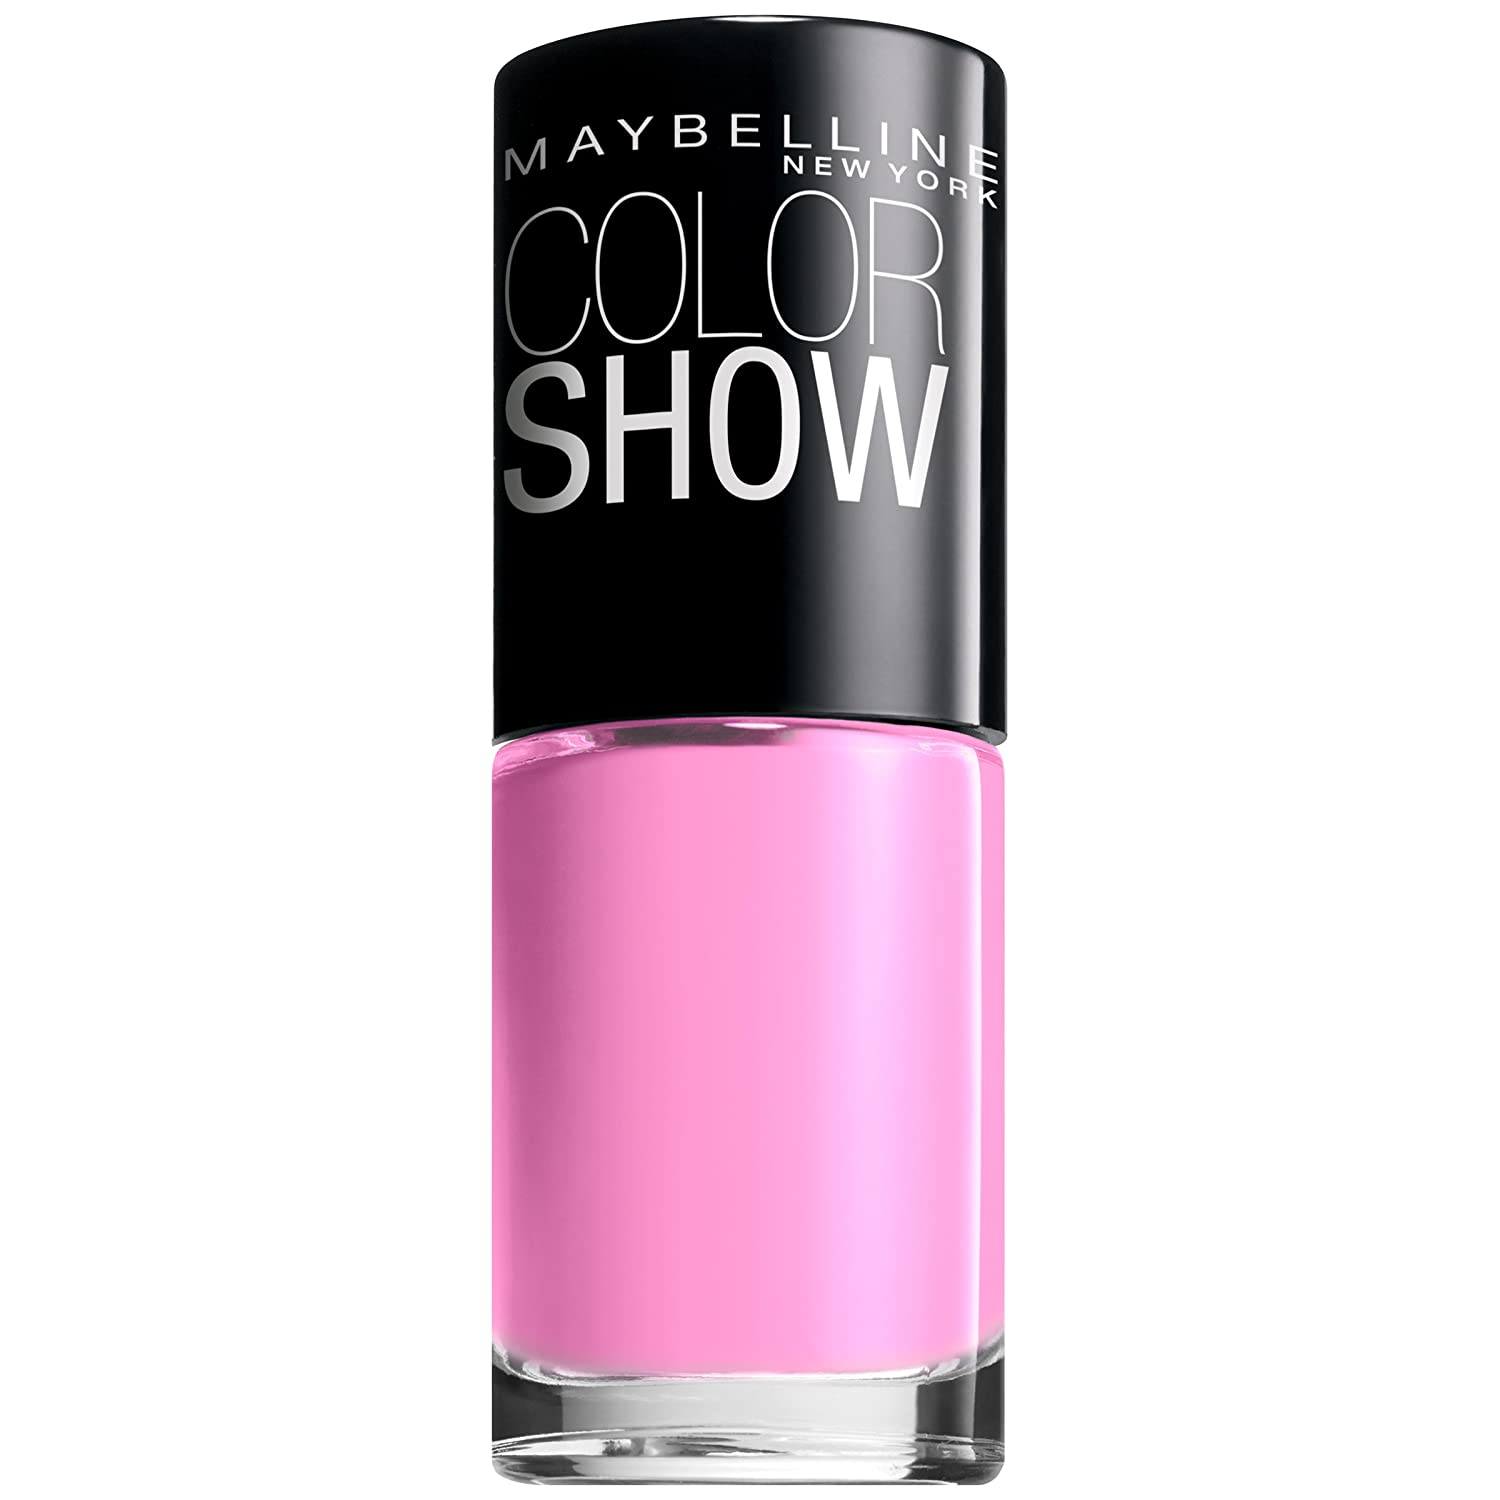 Amazon.com : Maybelline New York Color Show Nail Lacquer, Sapphire ...